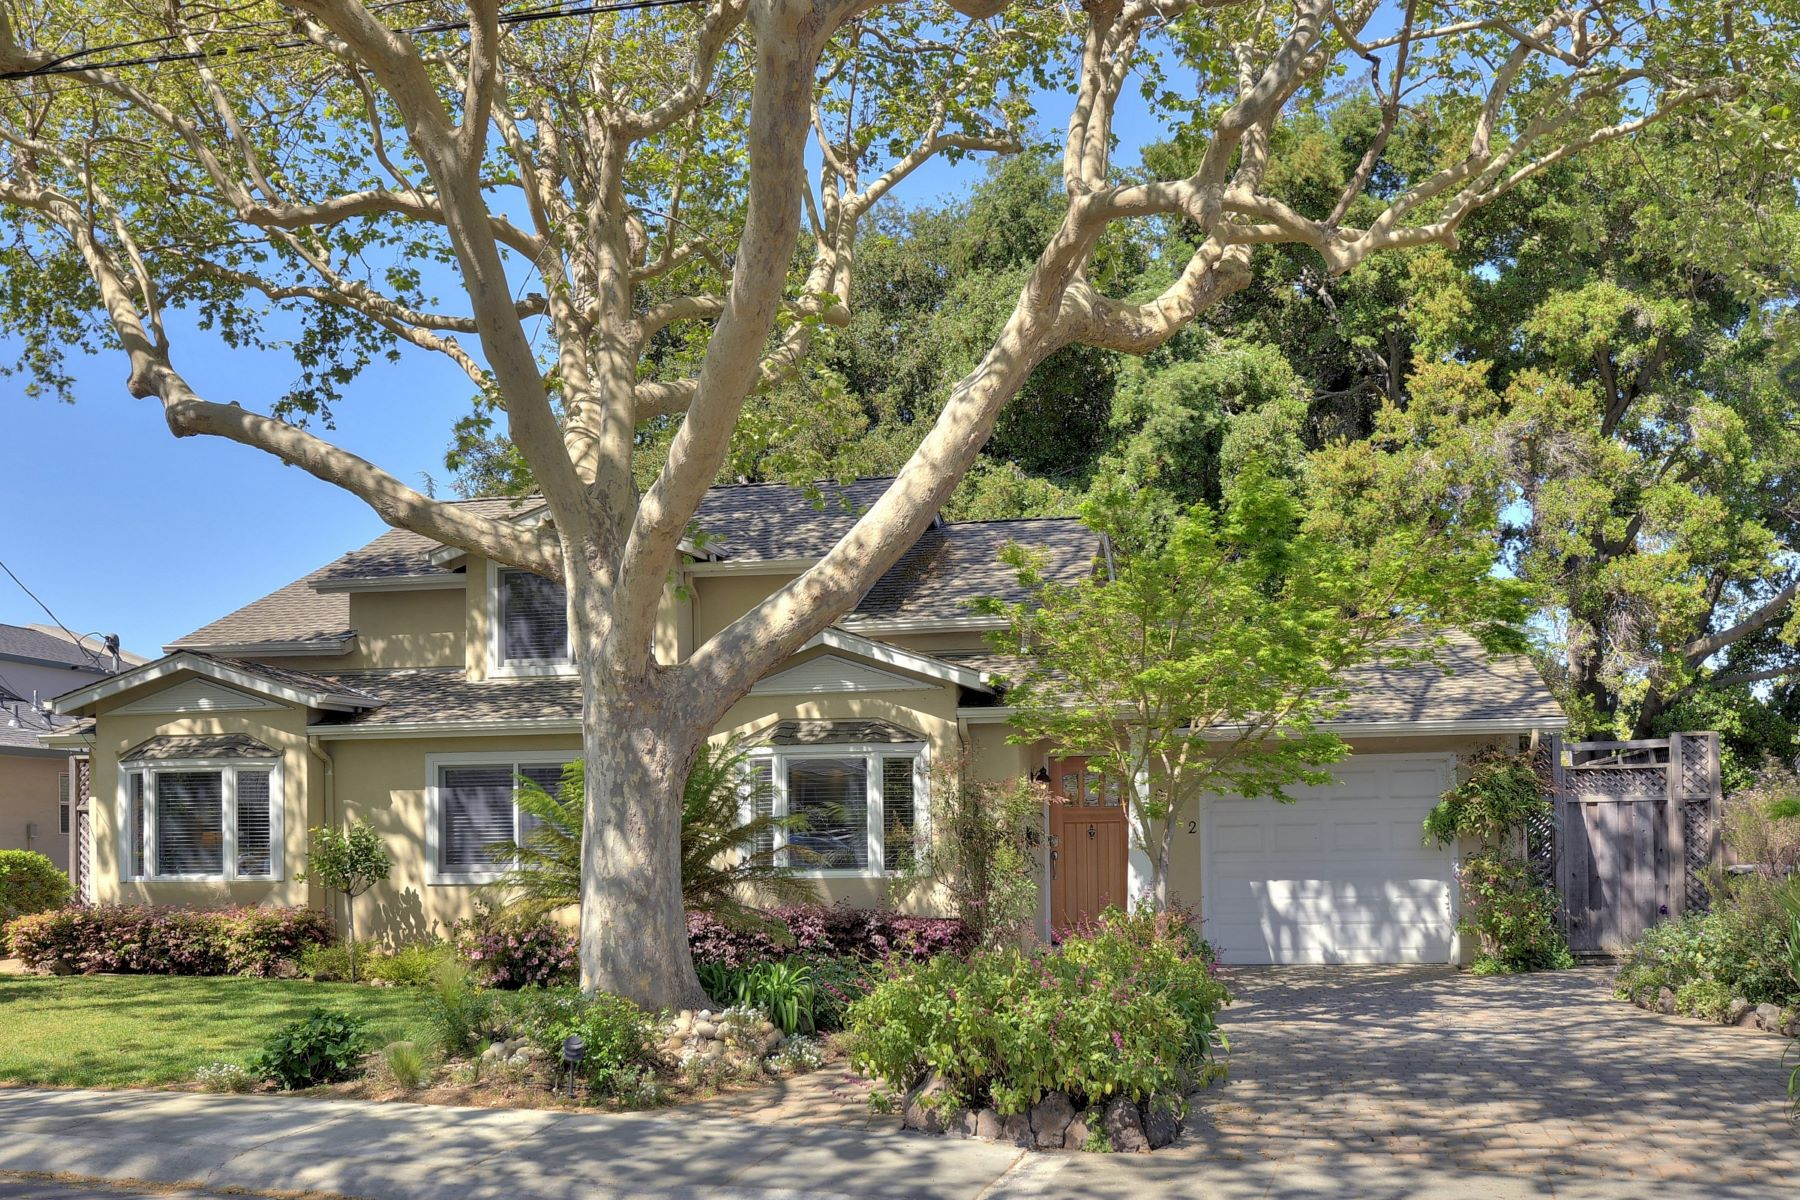 Single Family Home for Active at Charming, Spacious and Beautifully Updated 1072 Karen Way Mountain View, California 94040 United States